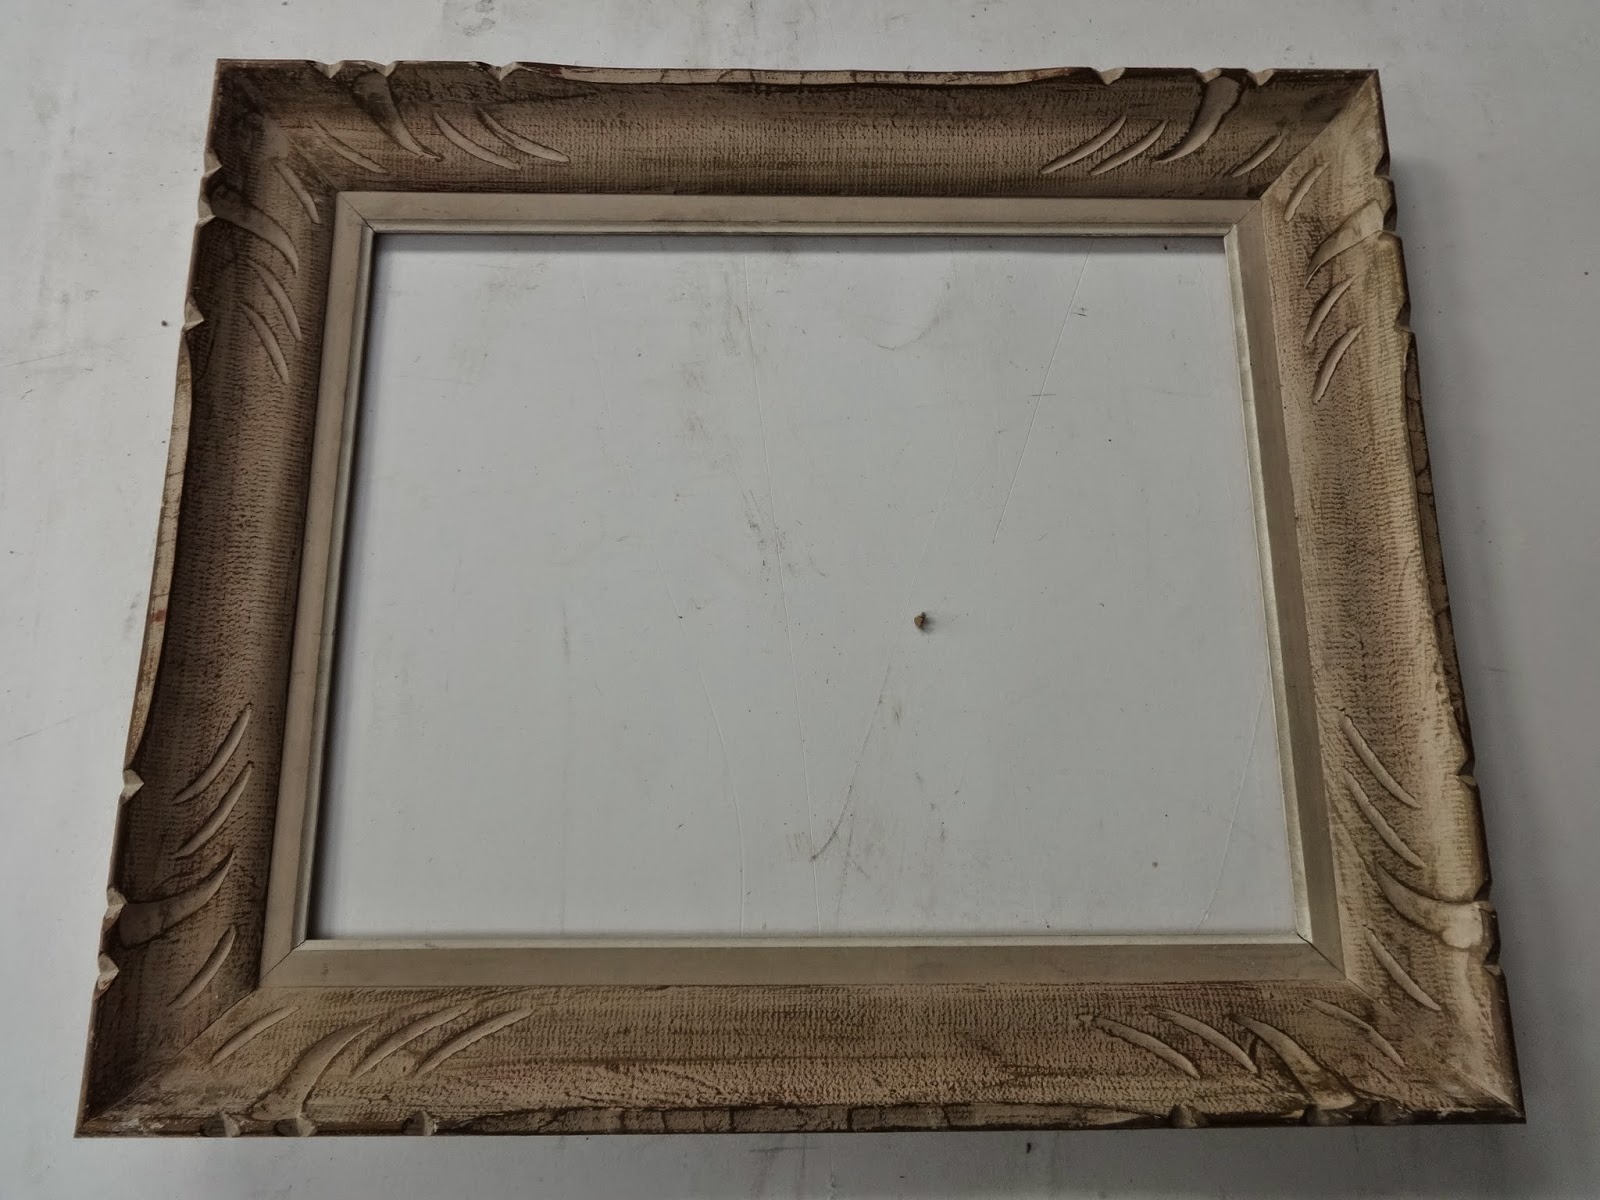 Antique Picture Frames Part - 39: Examples Of Three French Picture Frames. Top Is A 19th C Barbizon Frame,  Middle A 19th C Second Empire Fluted Neoclassical Frame, And Bottom Is A  Mid 20th C ...